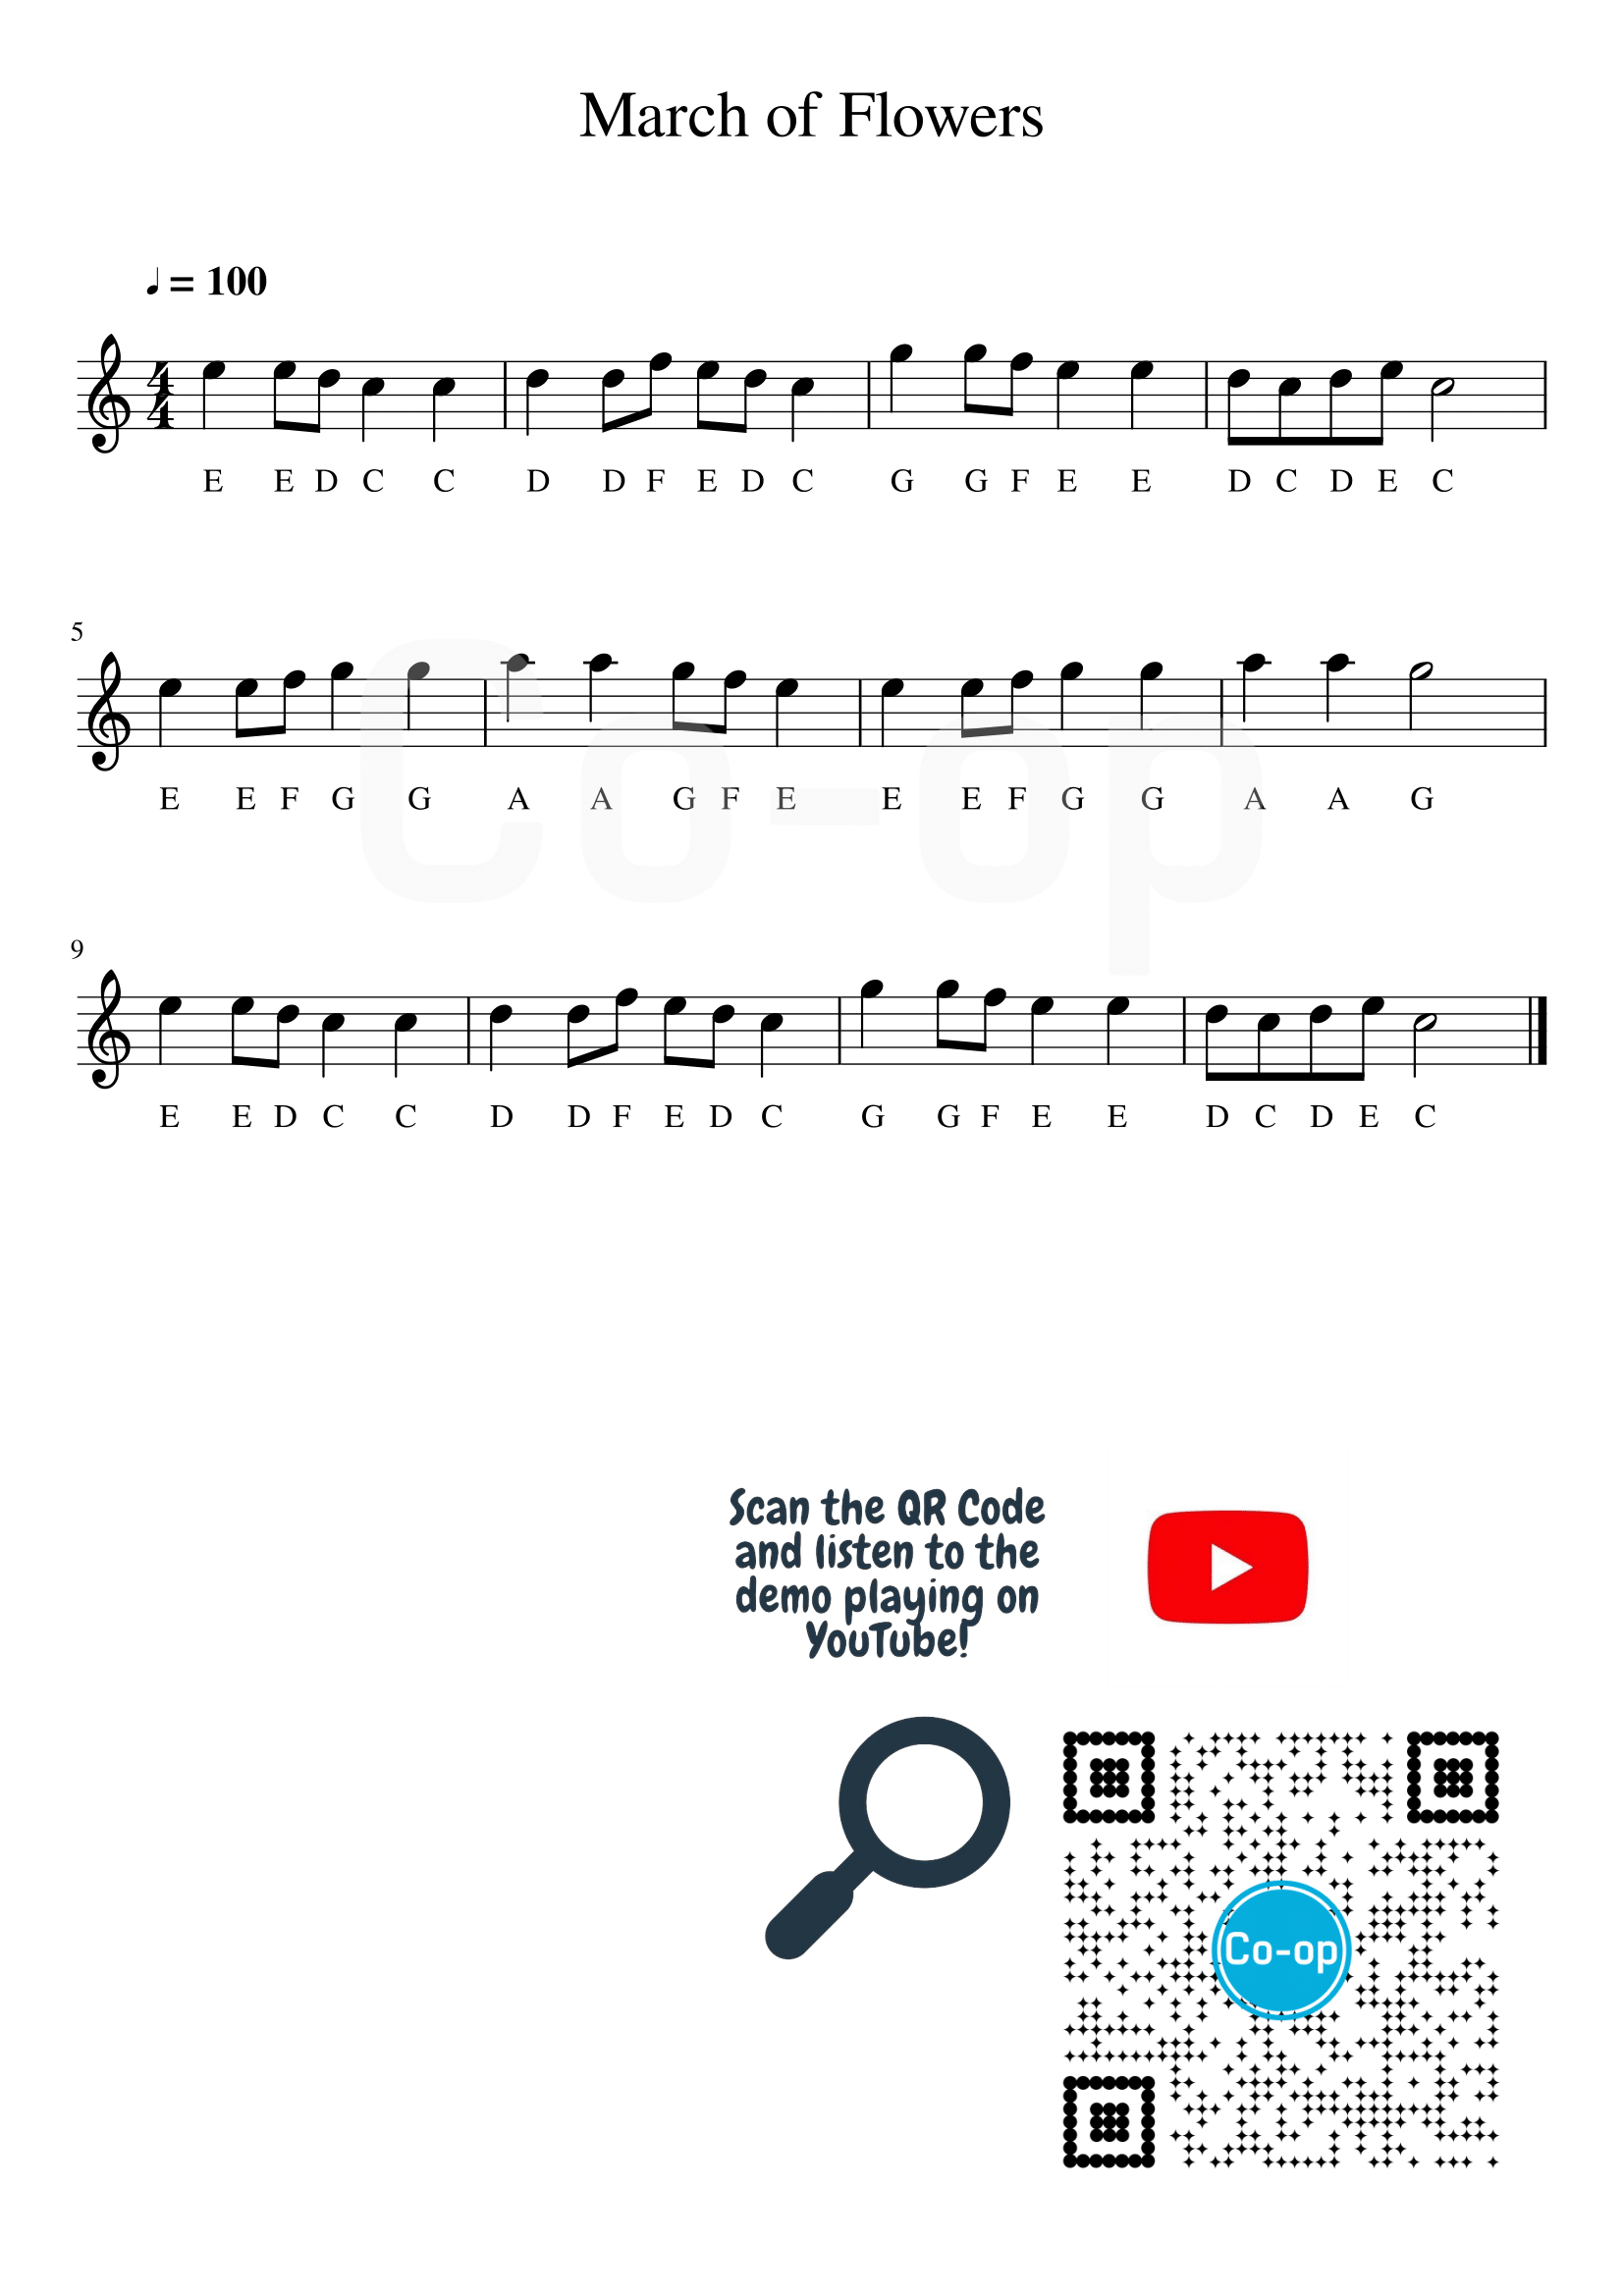 March of Flowers | Letter Notation | Free Sheet Music